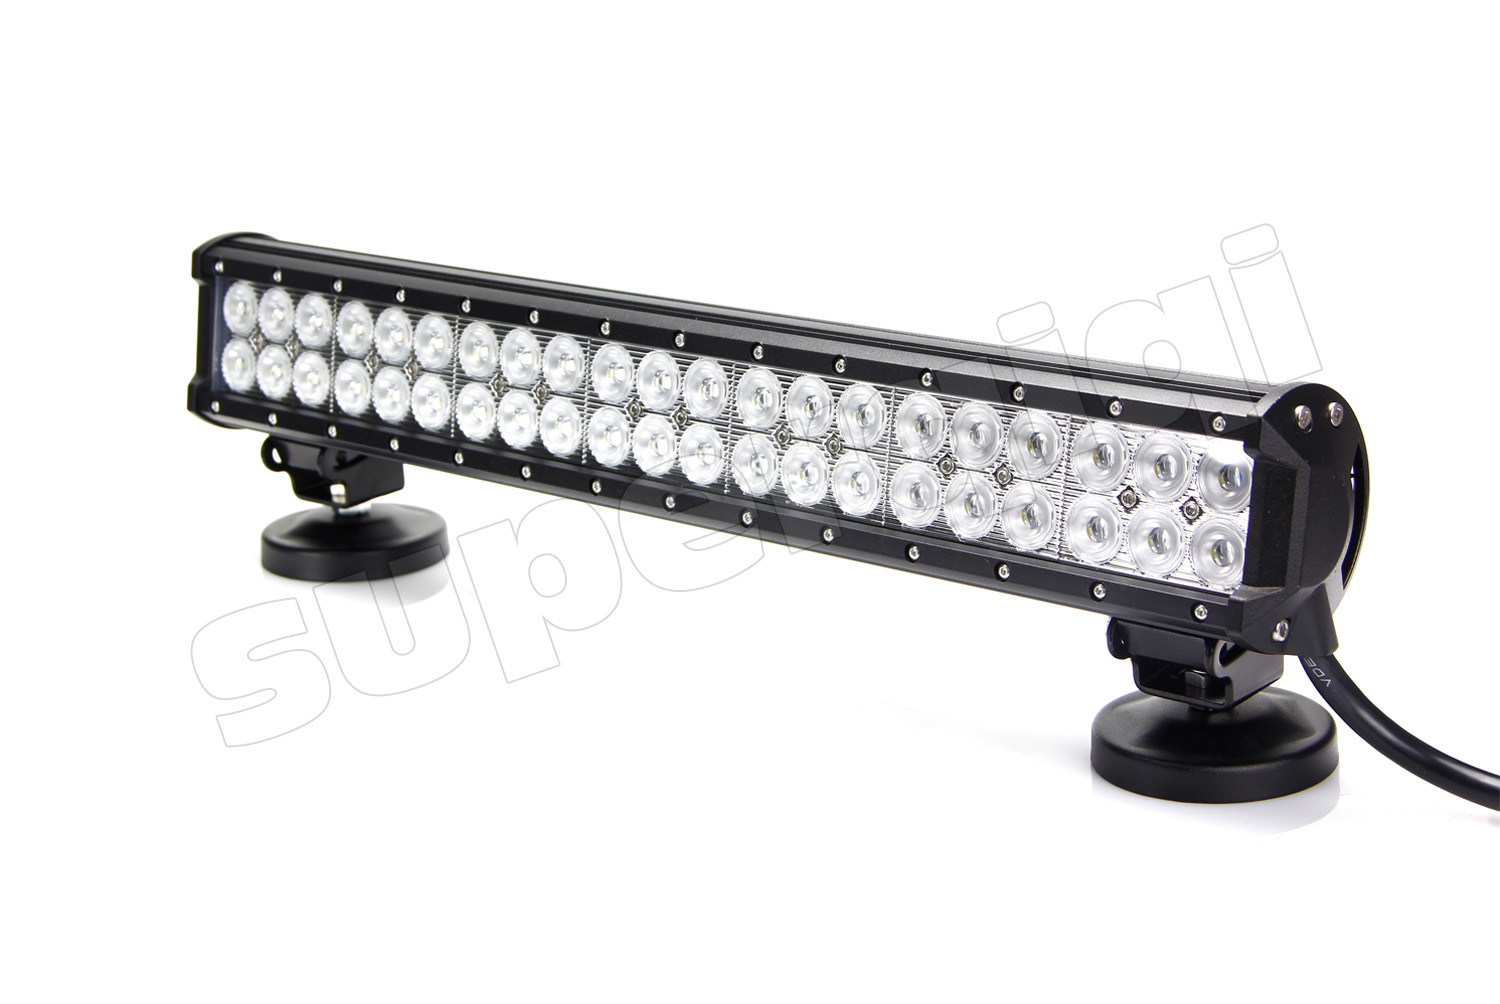 20 126w Cree Led Light Bar Off Road Work Lm Atv Utv